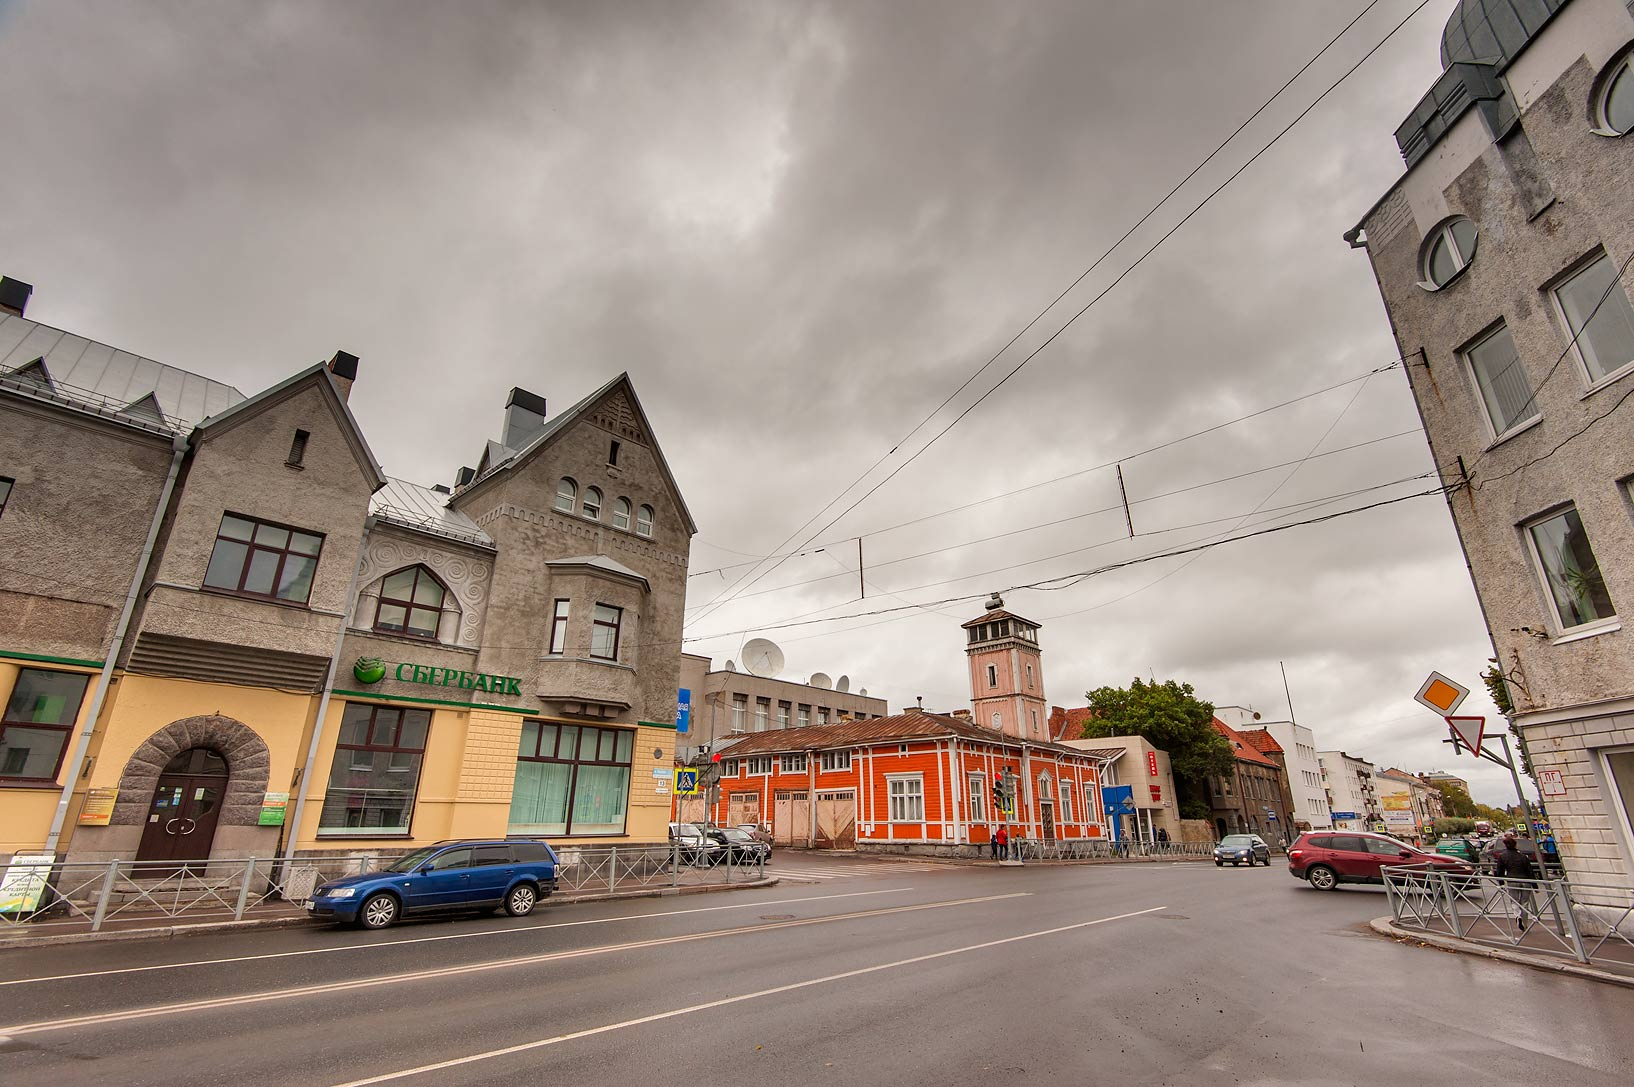 Fire Station from a corner of Karelskaya and...streets. Sortavala (Karelia), Russia